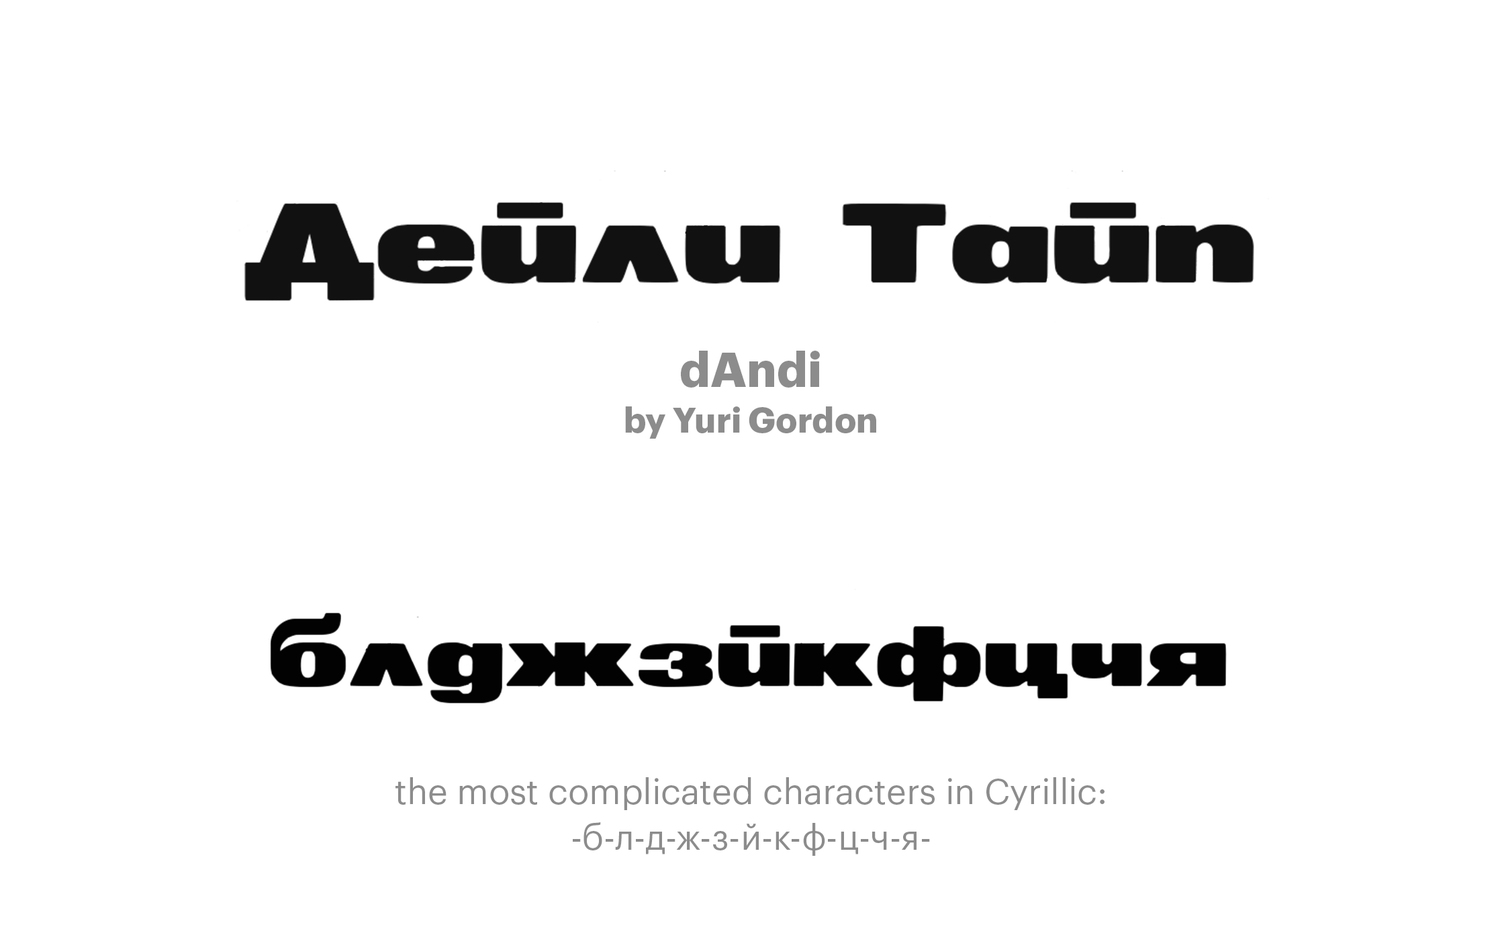 dAndi-by-Yuri-Gordon-(Letterhead-Studio)